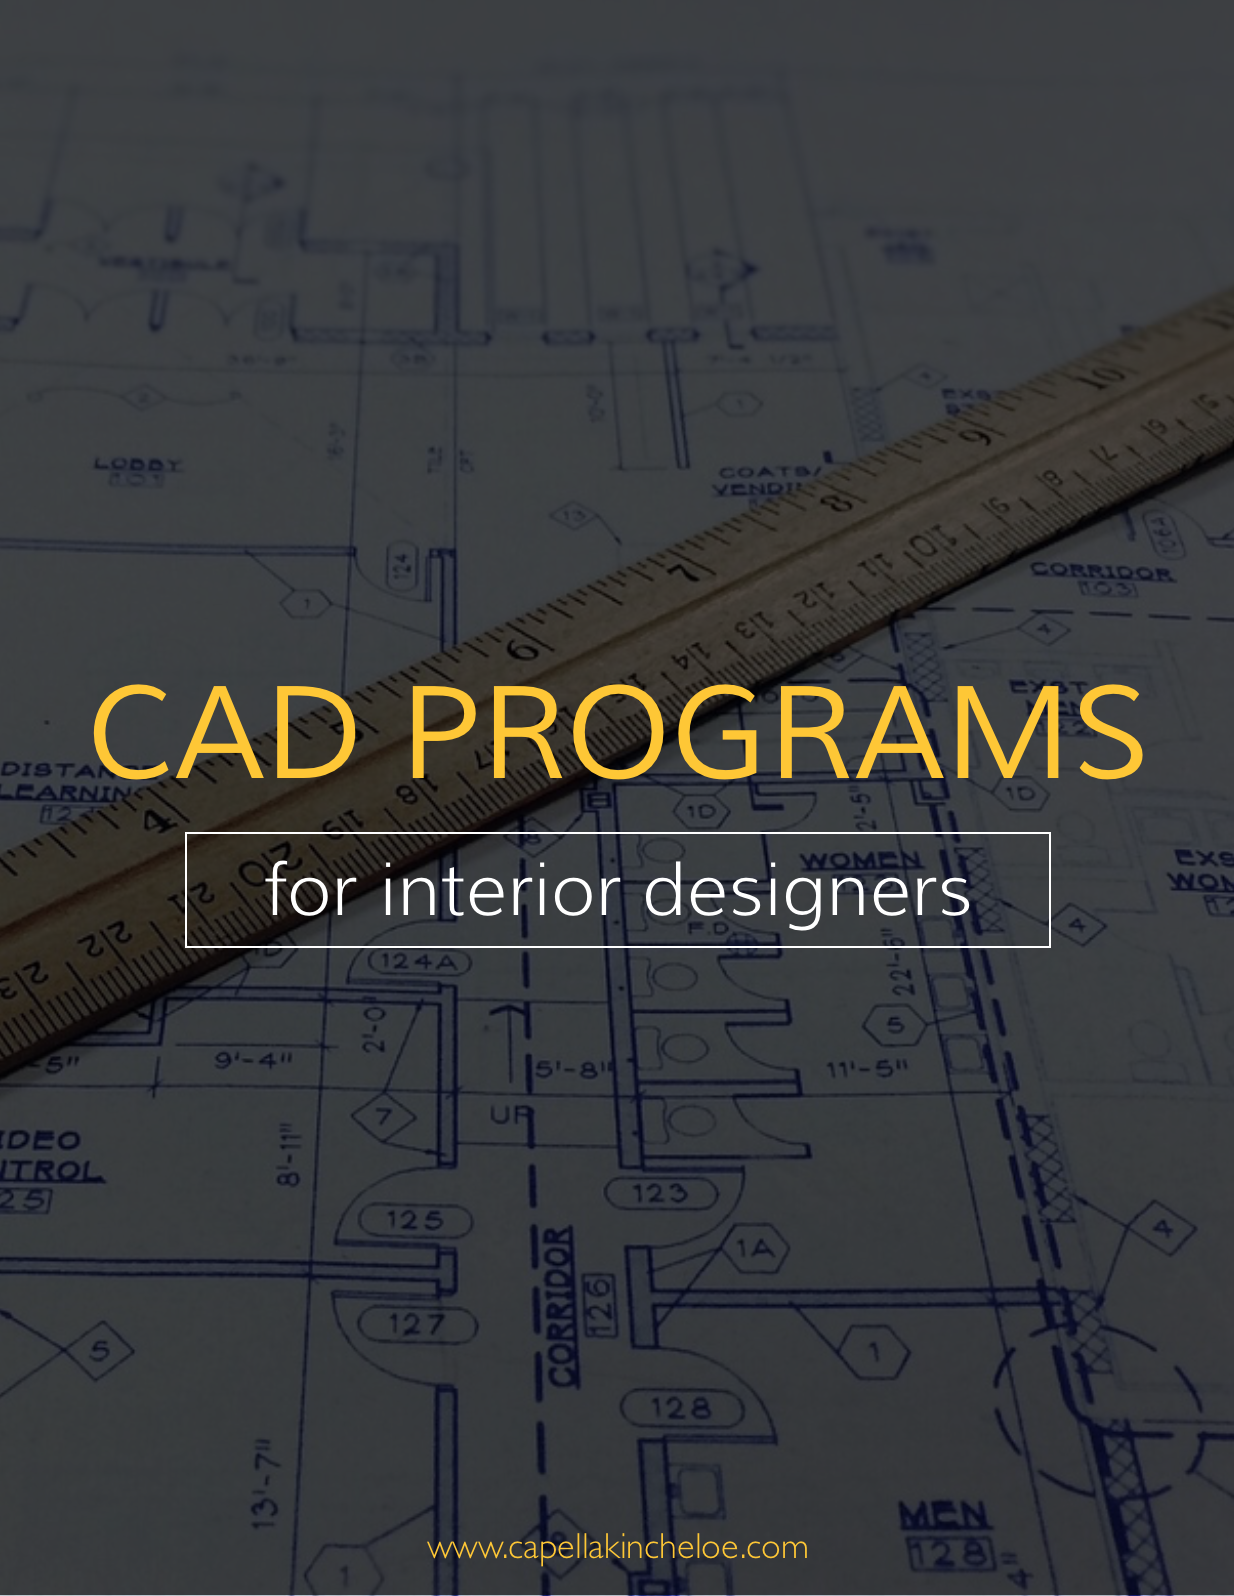 cad programs for interior designers interior design